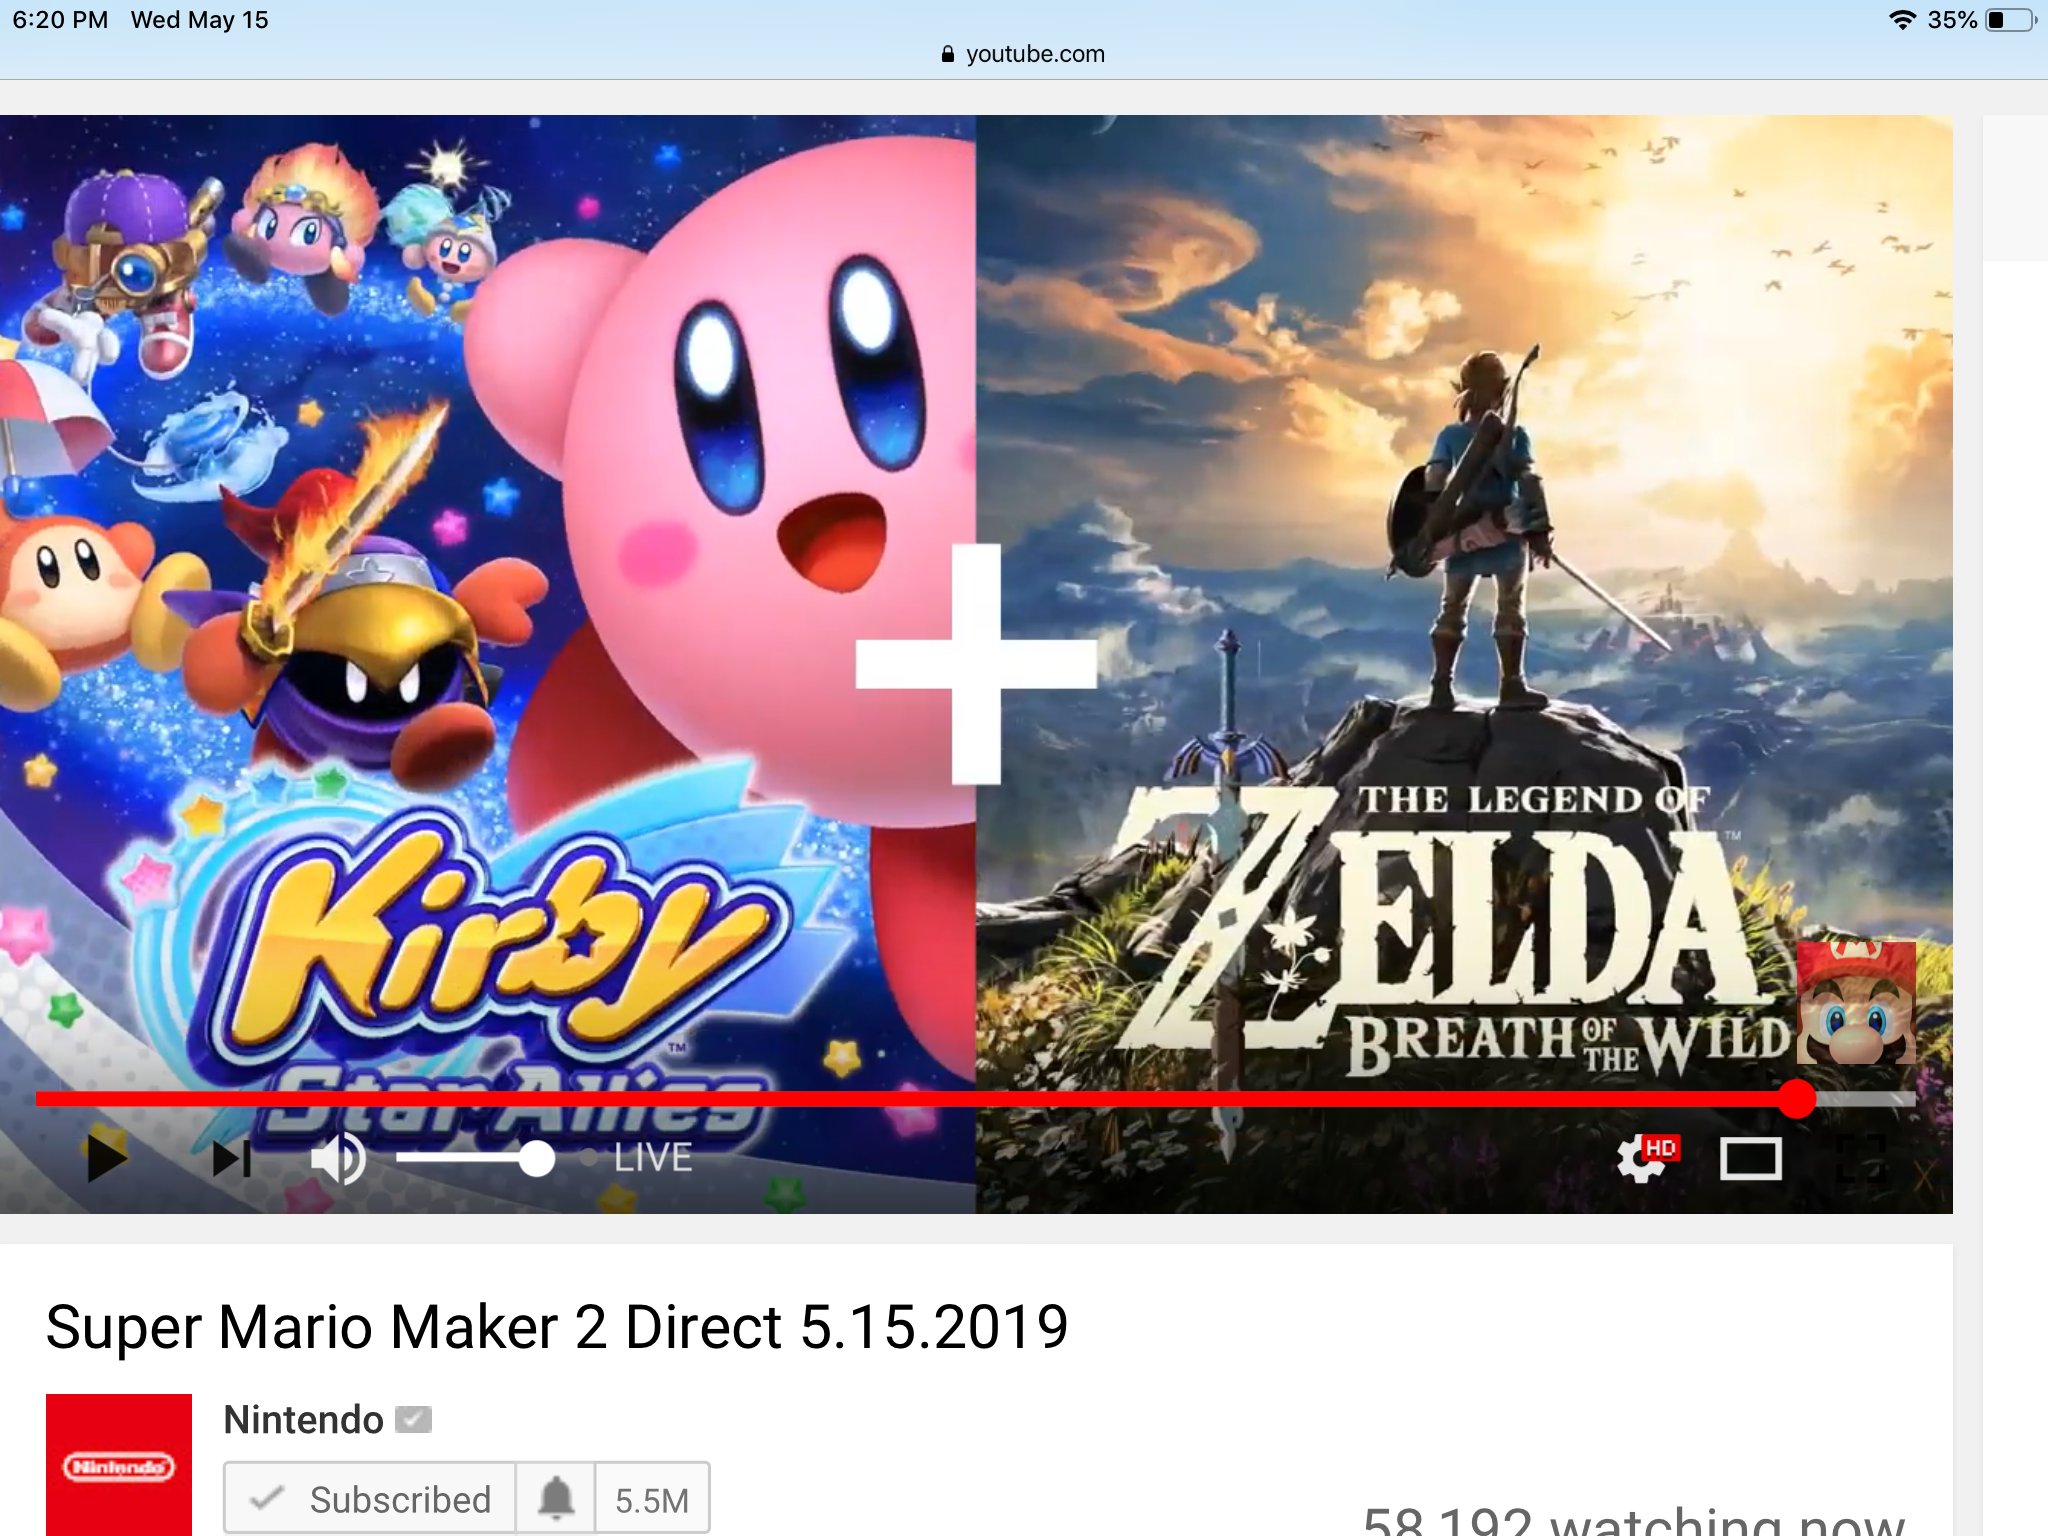 OH MY GOSH KIRBY WAS IN THE MARIO MAKER 2 DIRECT, WHAAAA-